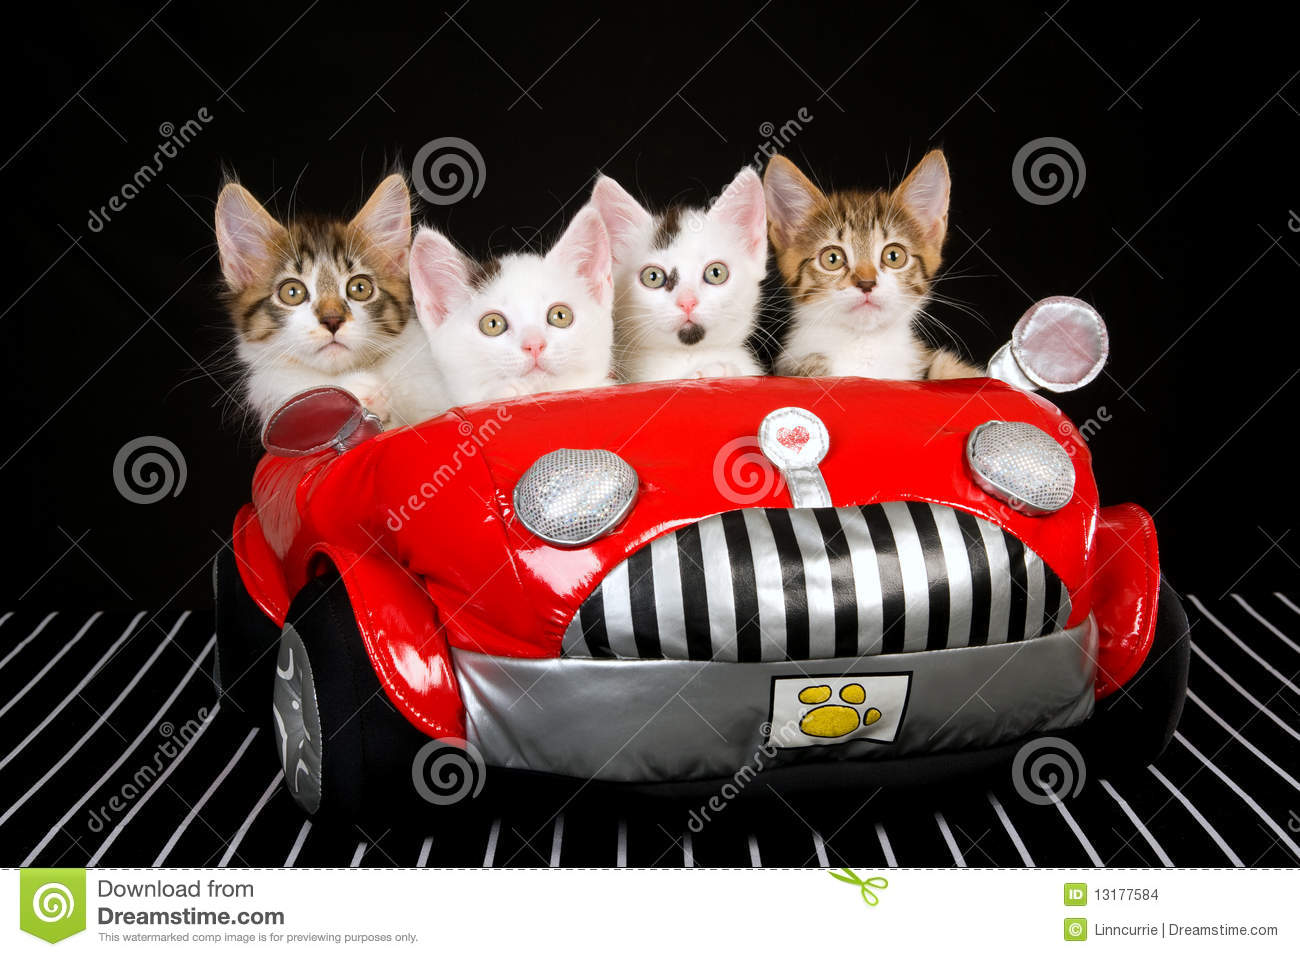 4 Cute Kittens In Red Soft Toy Car Stock Images  Image